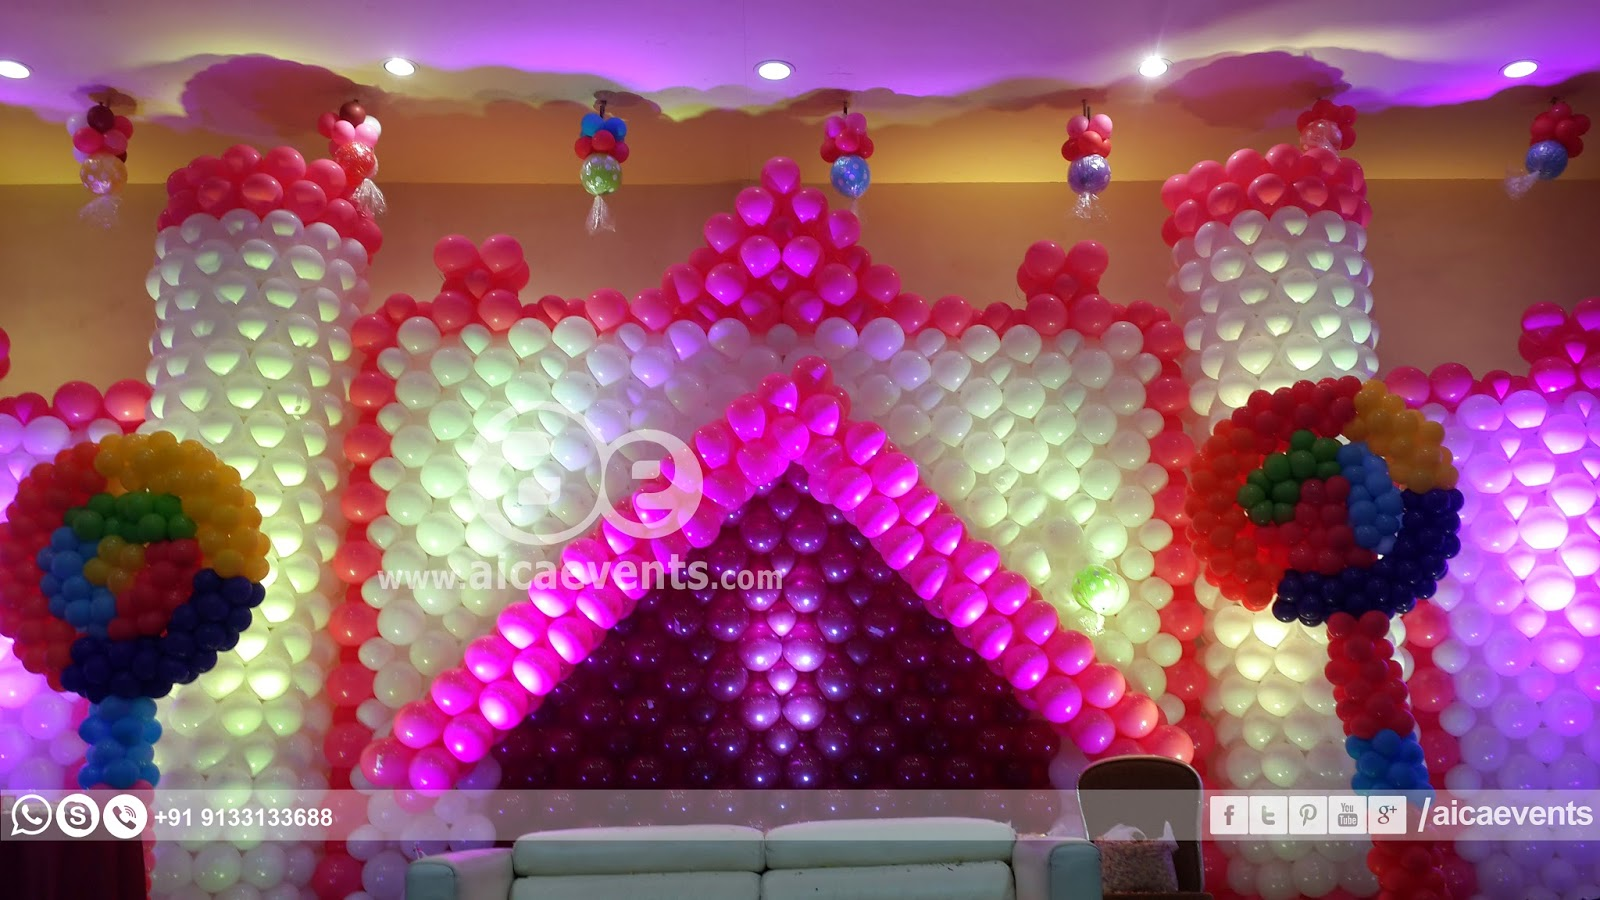 Aicaevents India: Castle with Balloon Wall Decoration